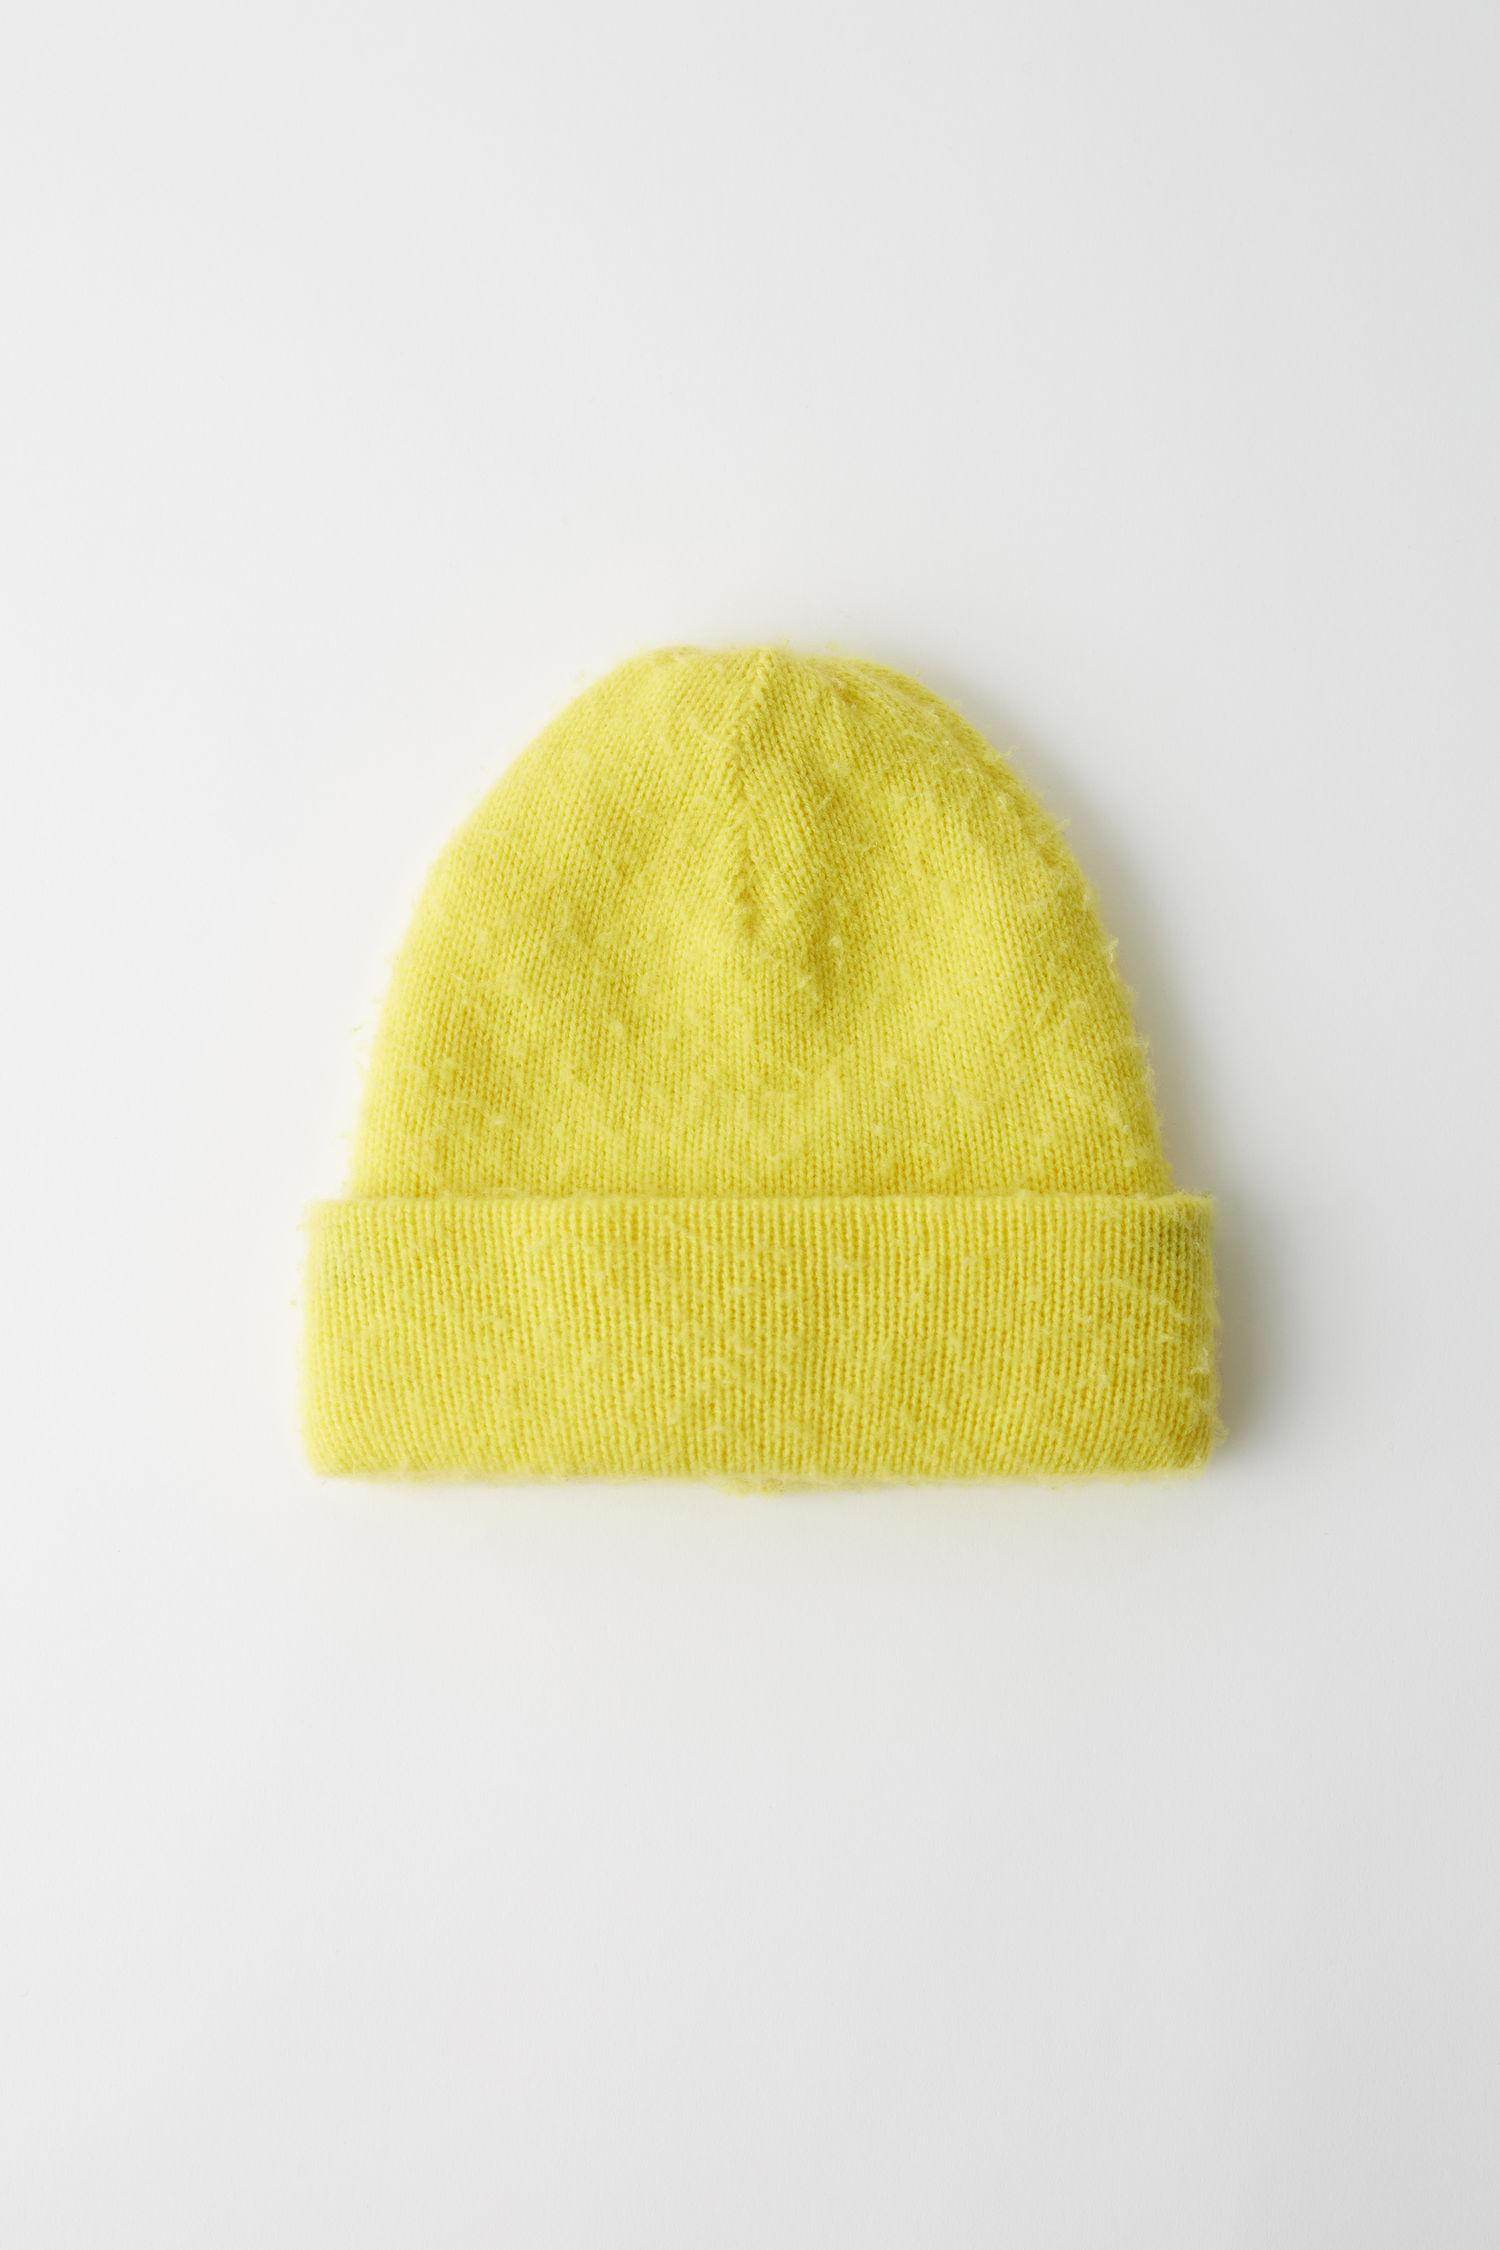 9a06b51756e Acne Fn-ux-hats000002 Yellow Pilled Beanie in Yellow - Lyst